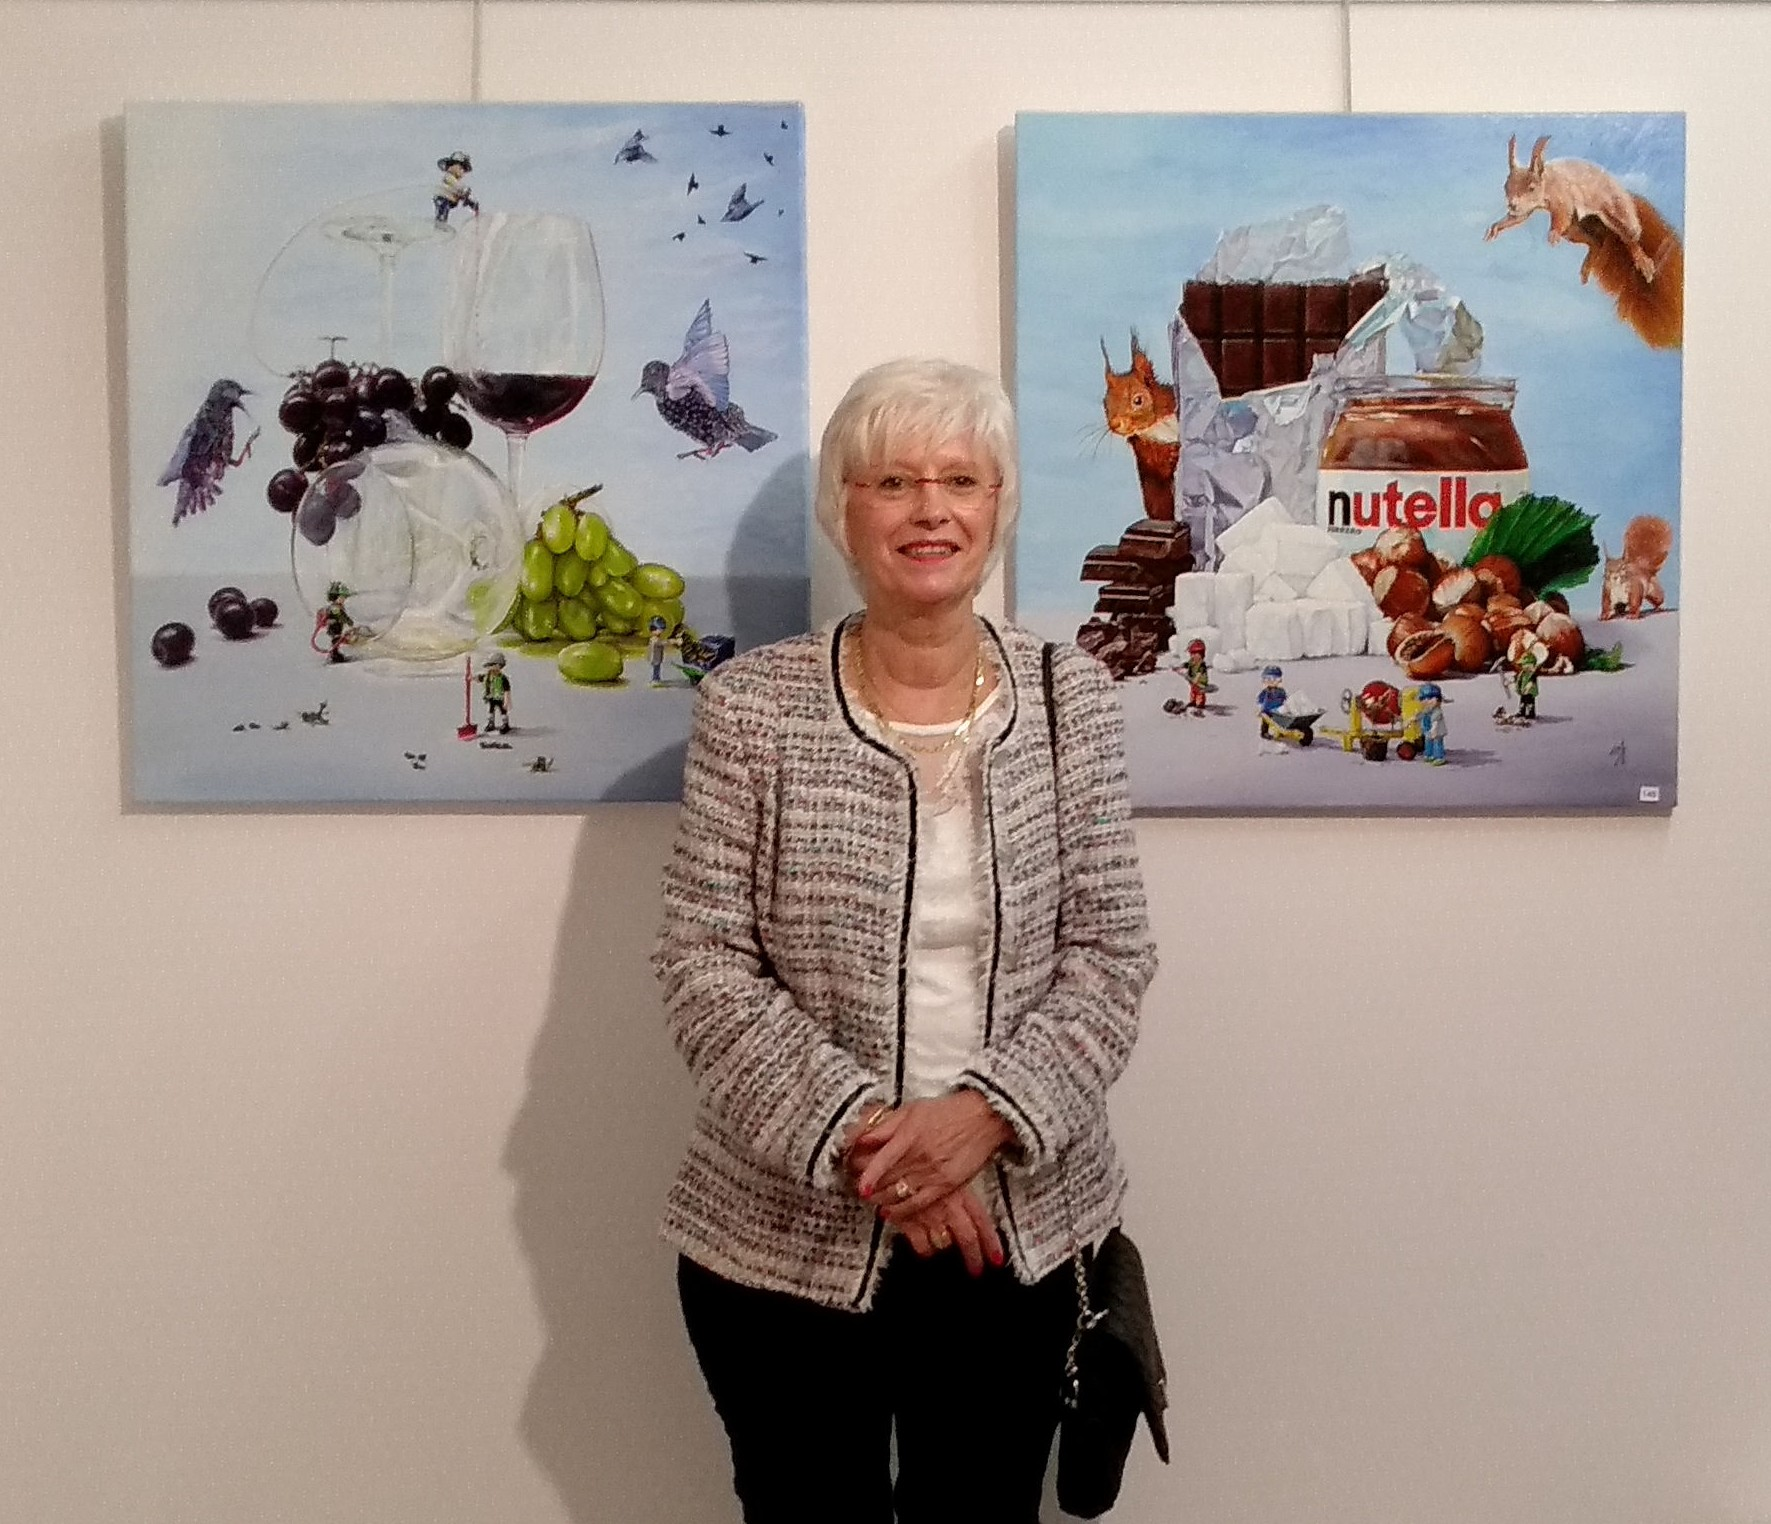 Martine Cadoret au Salon International d'automne à Lunéville en 2018